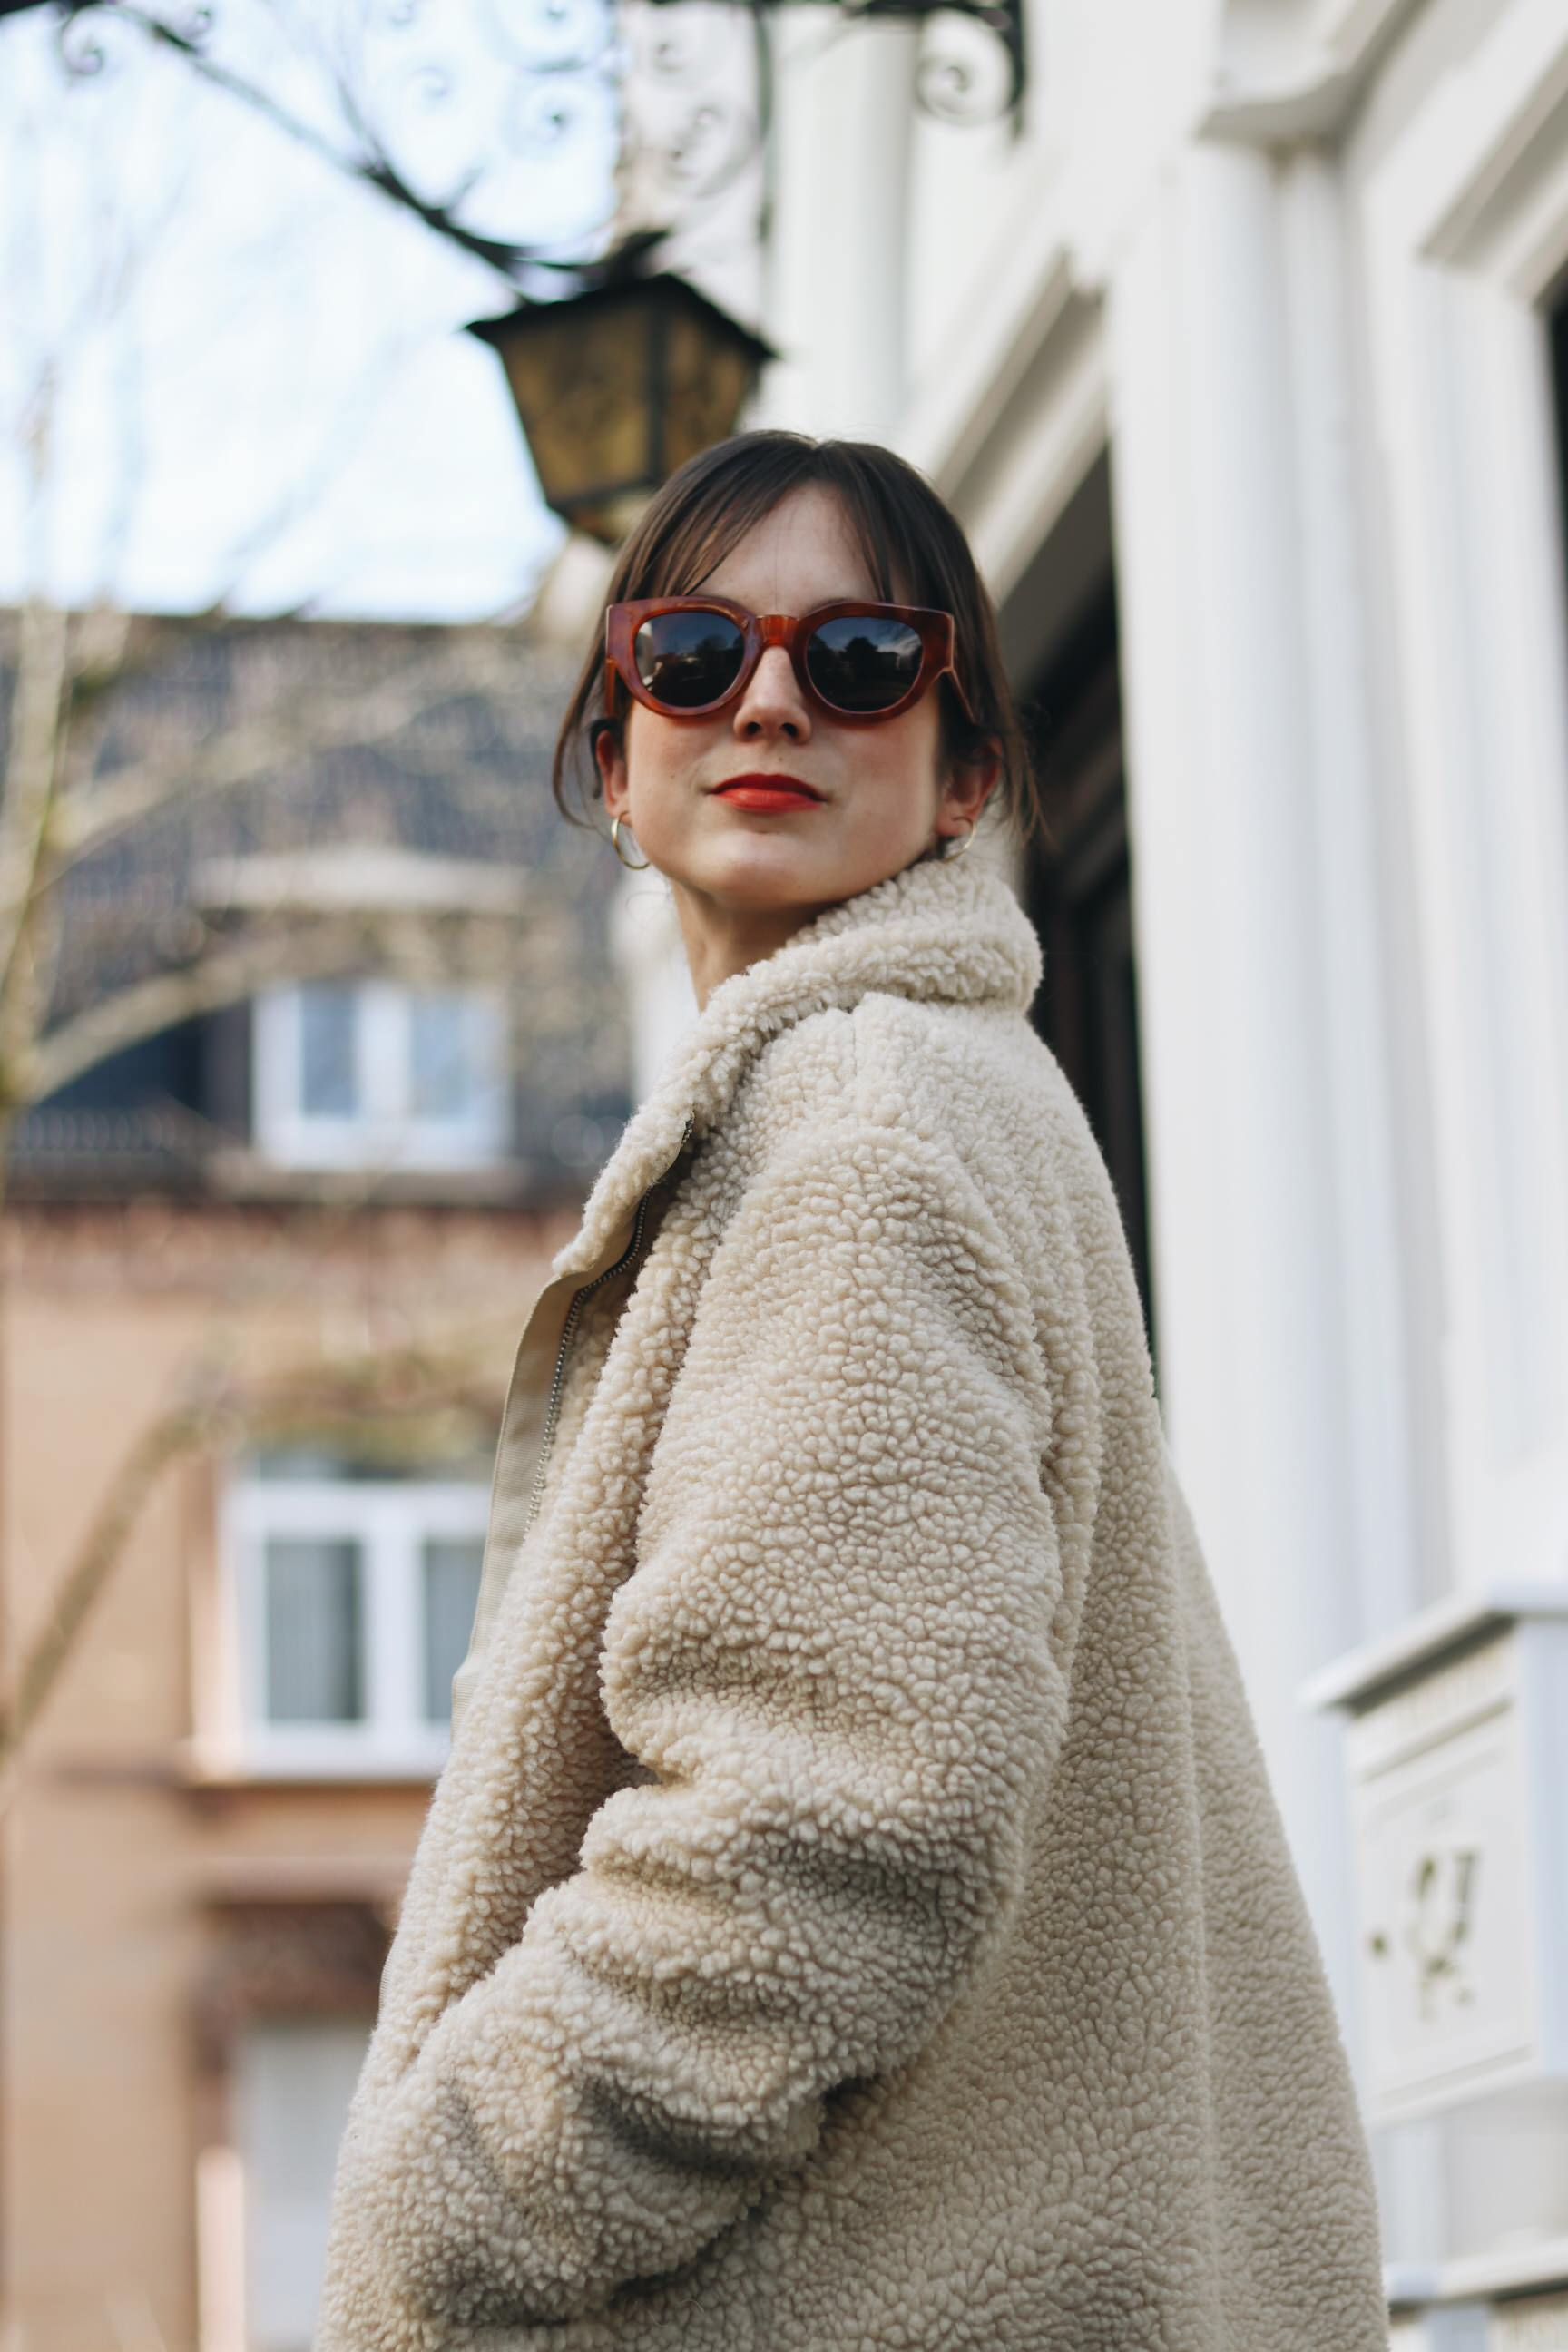 Neele Modebloggerin Top 10 Deutschland Modeblog Outfit Streetstyle Winter French Chic